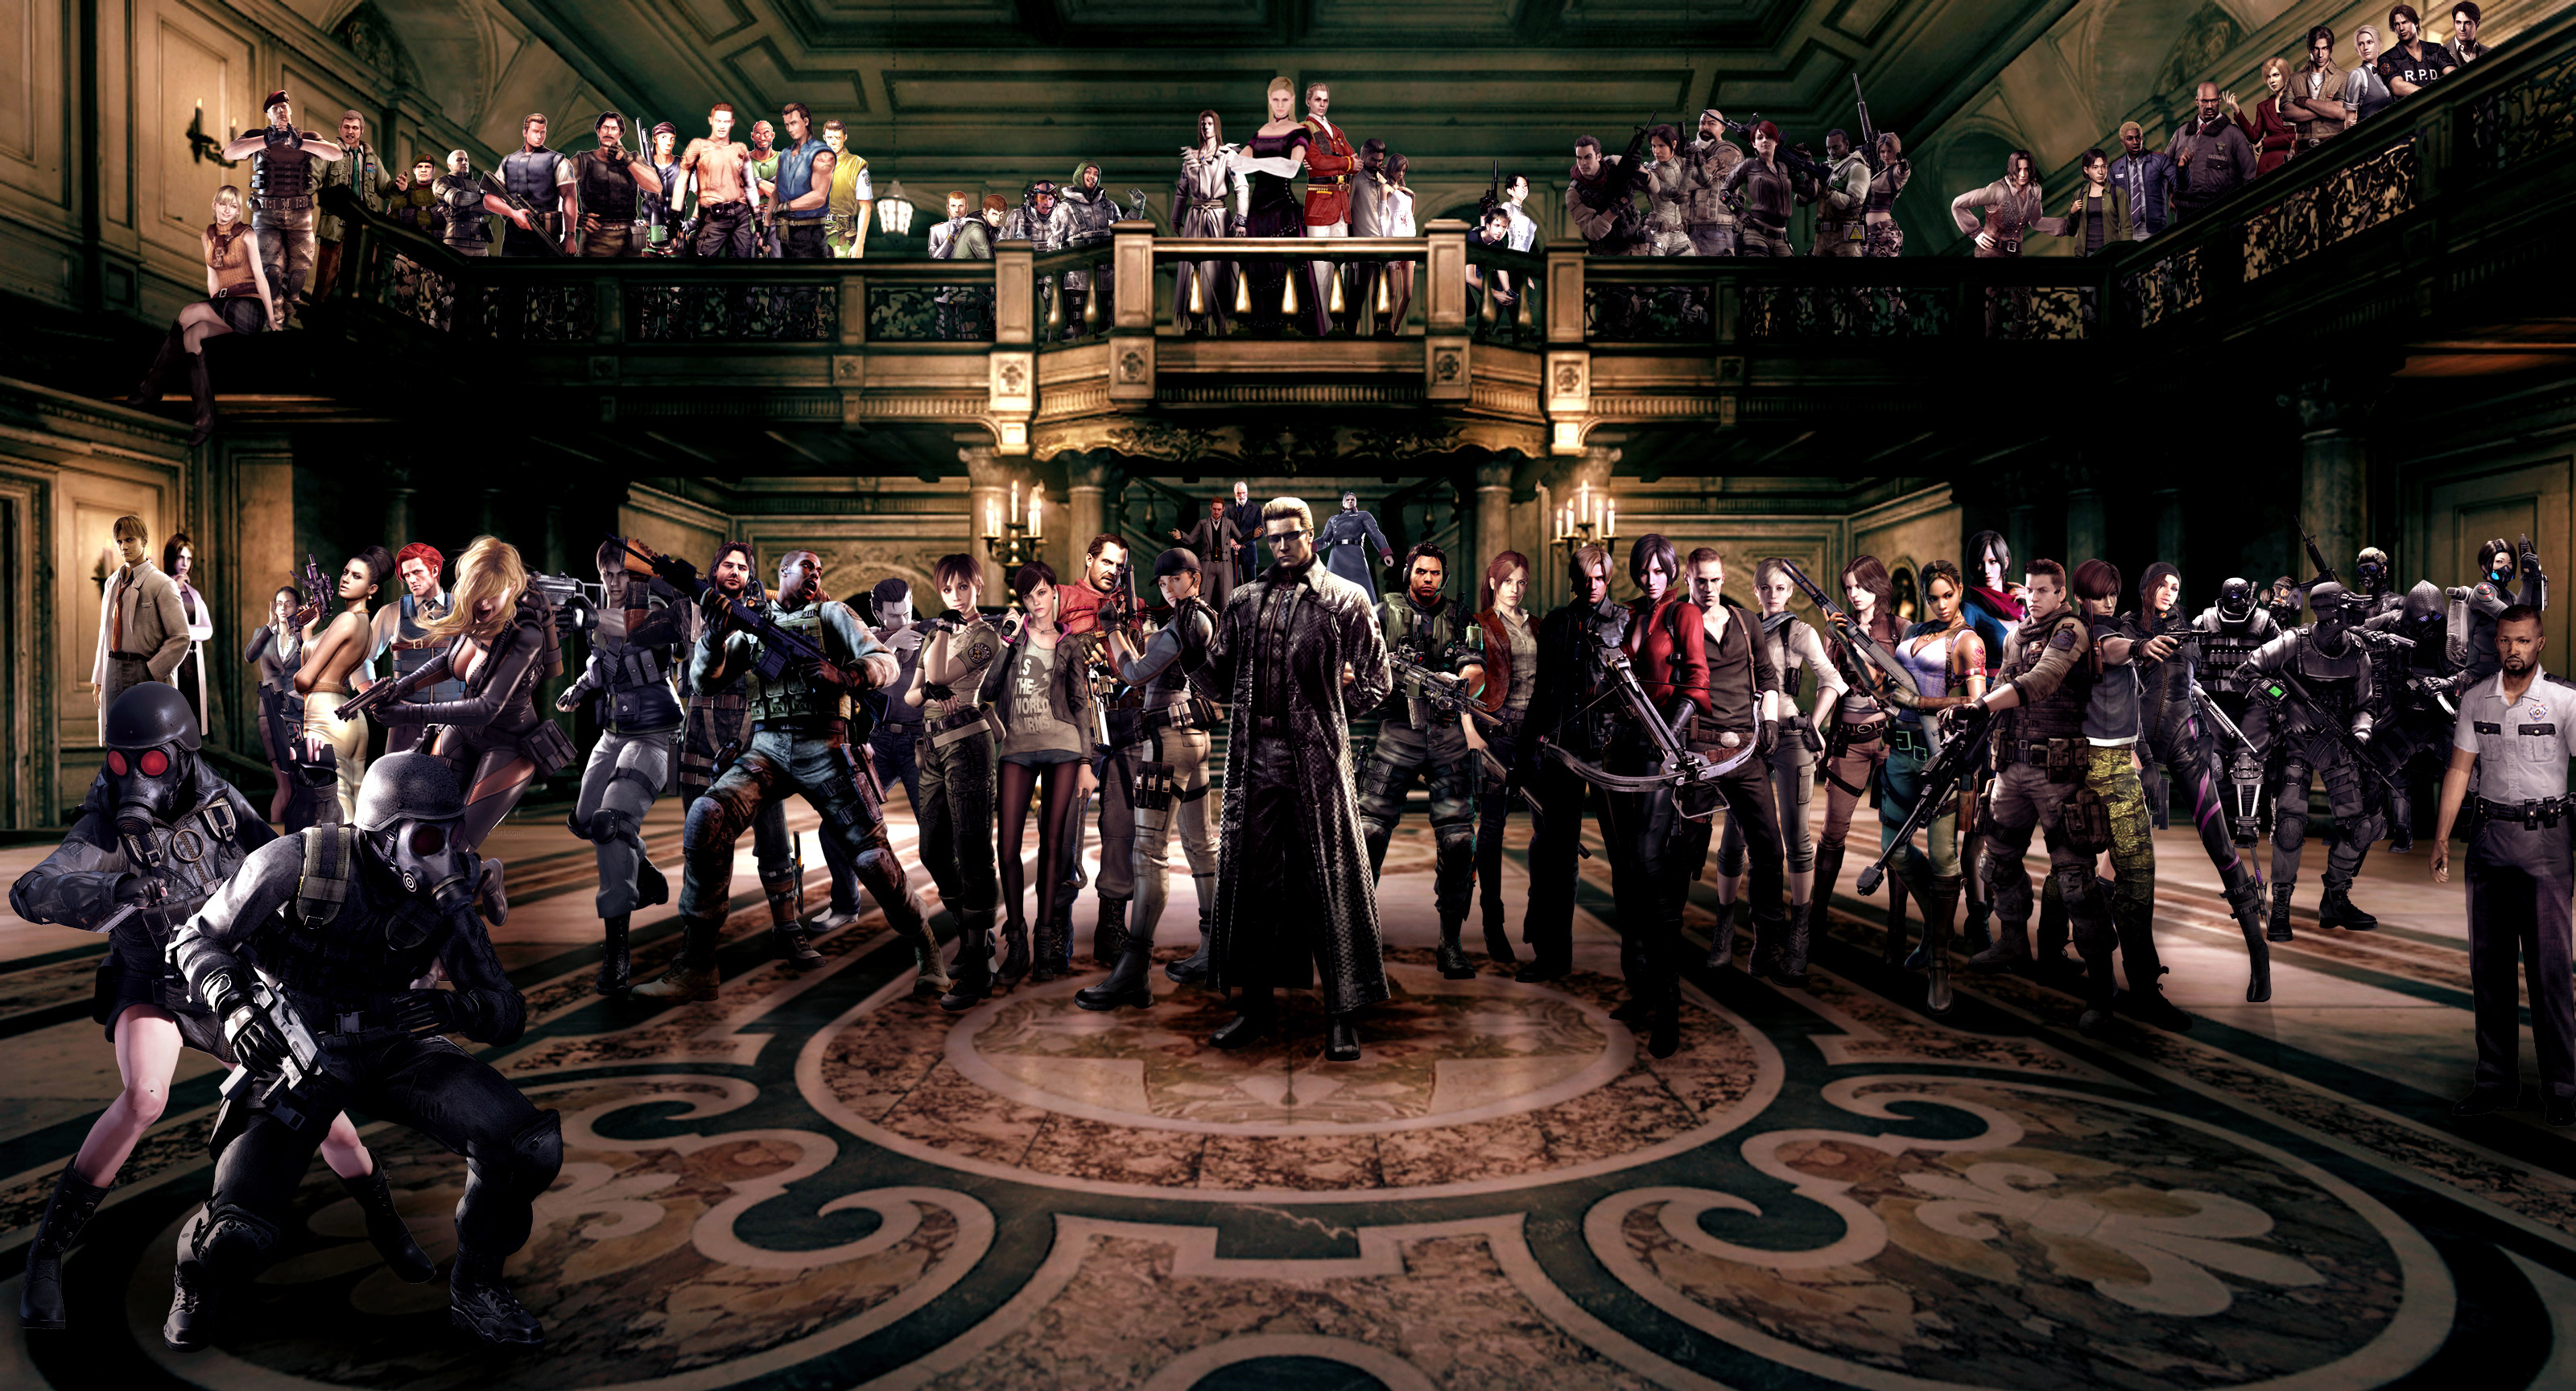 Hd wallpaper q mobile - Resident Evil Characters Games Hd 4k Wallpapers